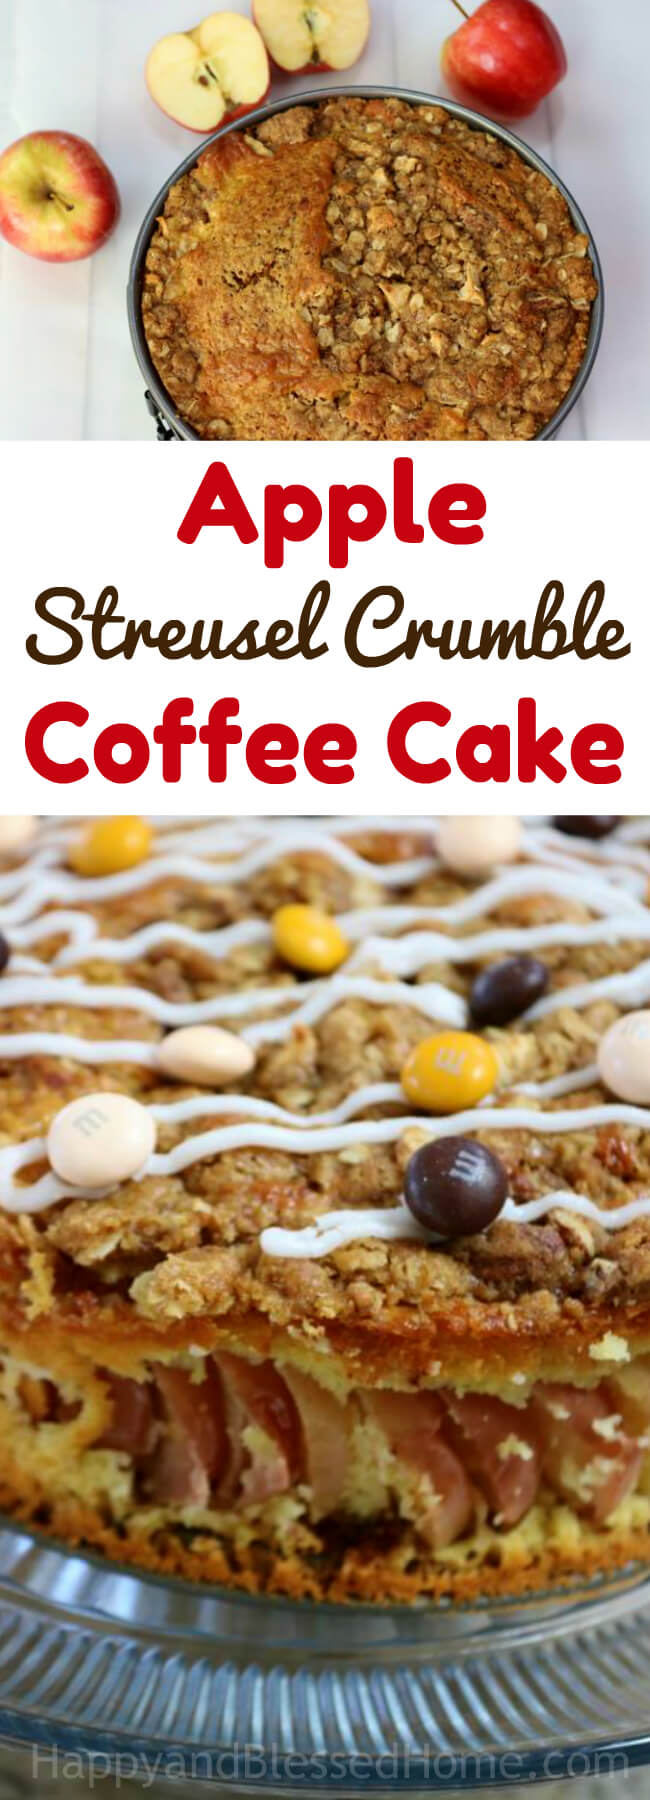 A baked dessert - Apple Streusel Crumble Coffee Cake